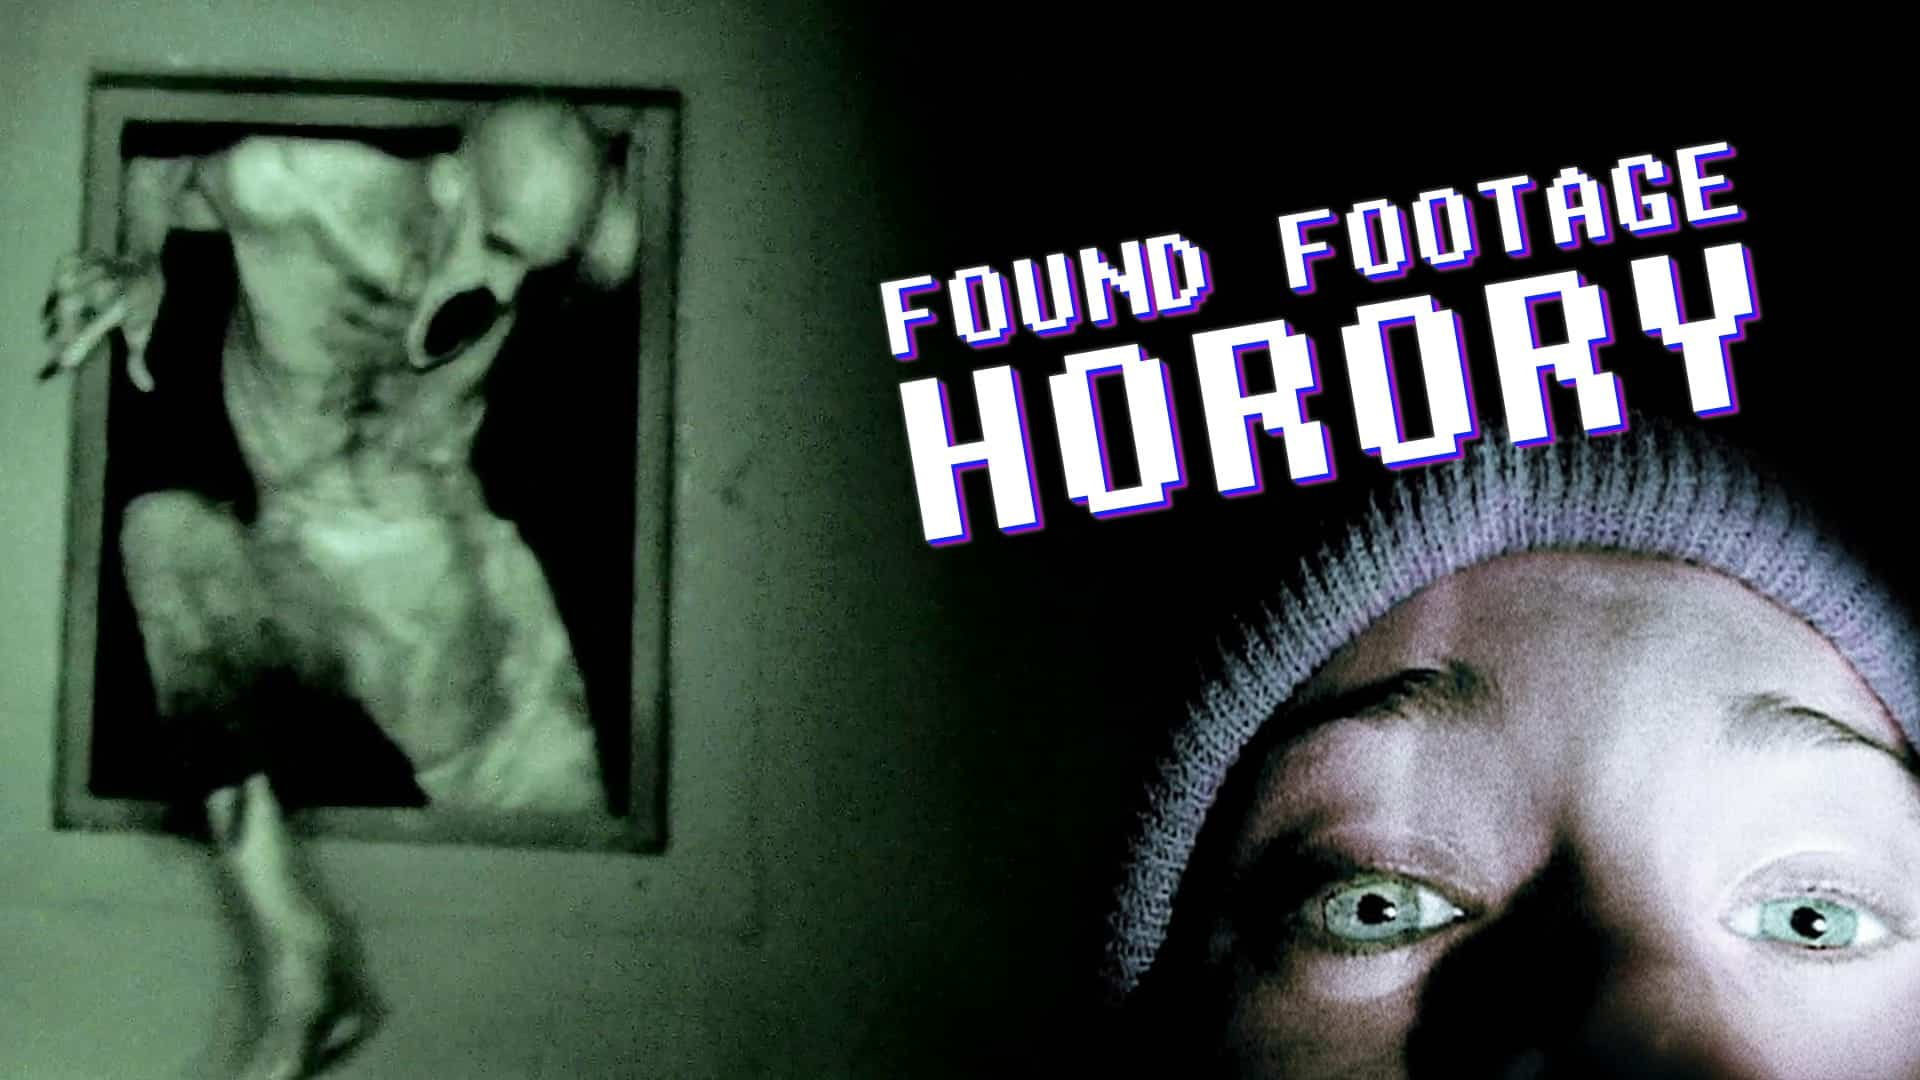 found footage horory